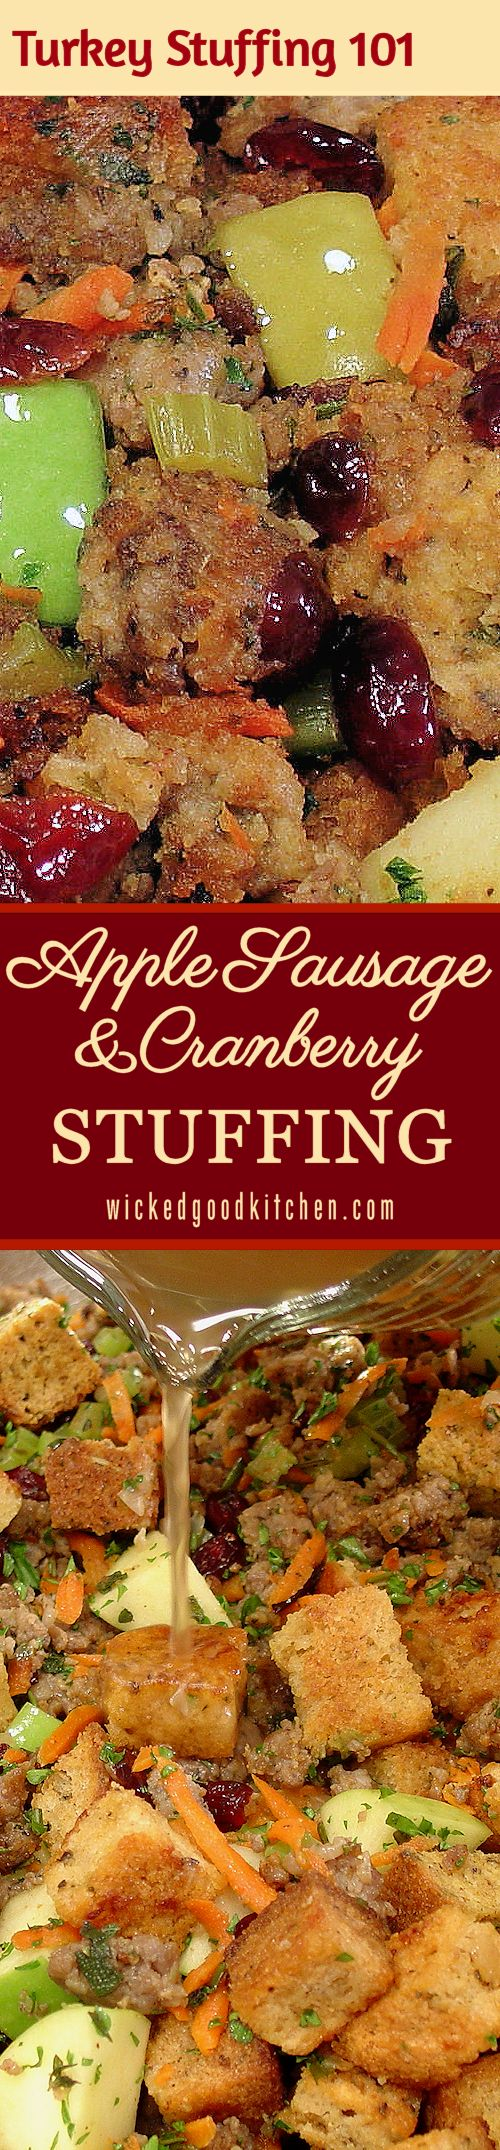 Five-Star Apple Sausage and Cranberry Stuffing ~ TURKEY STUFFING 101: Step-by-Step Tutorial with Photos & Instructions plus 10 Tips for Making Stuffing or Dressing ~ Fresh, savory, tart, sweet and festive, the perfect stuffing for #Thanksgiving or #Christmas #Holidays! Featured at the Allrecipes.com site with a 5-star rating and over 2,000 reviews. It will rock your ever-loving turkey stuffing world! (Gluten free option with bread recipes included.)